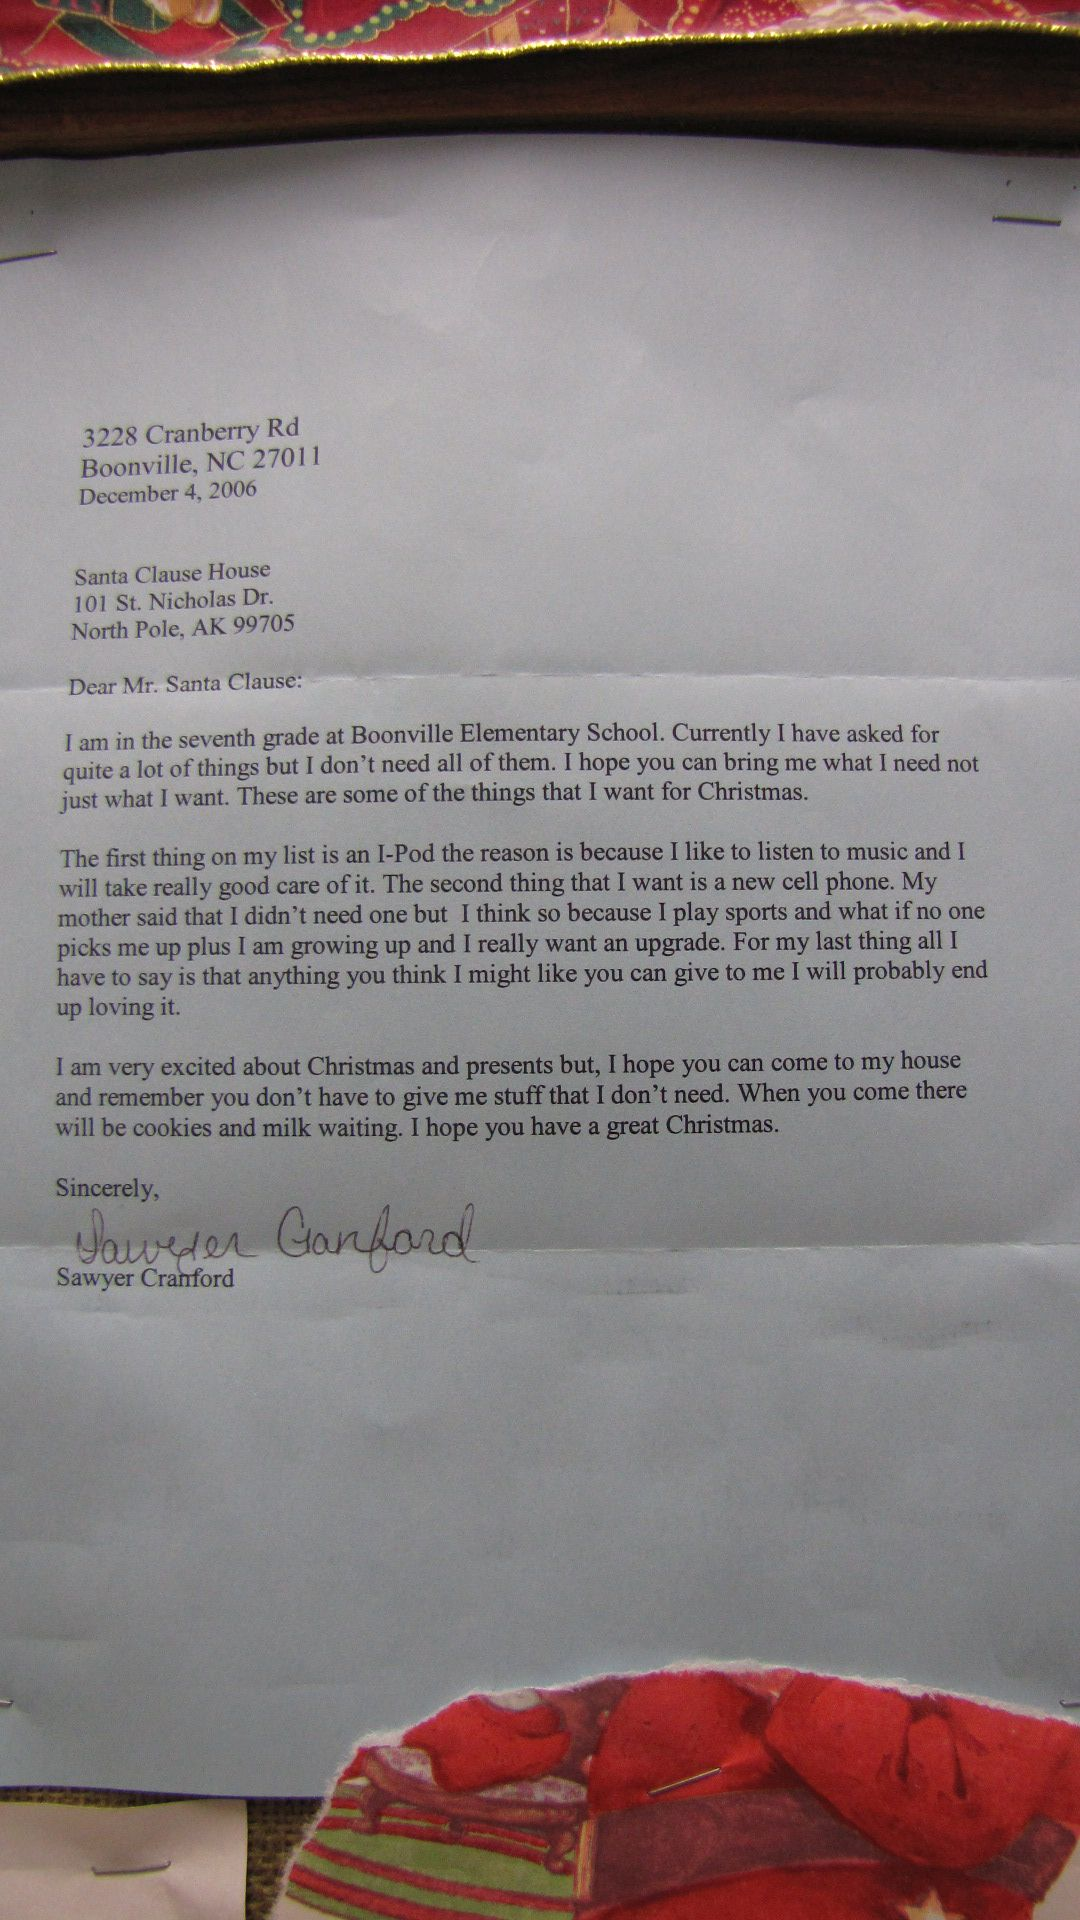 'North Pole' nr Fairbanks - this is a real letter send to 'Santa Claus, North Pole, Alaska'...